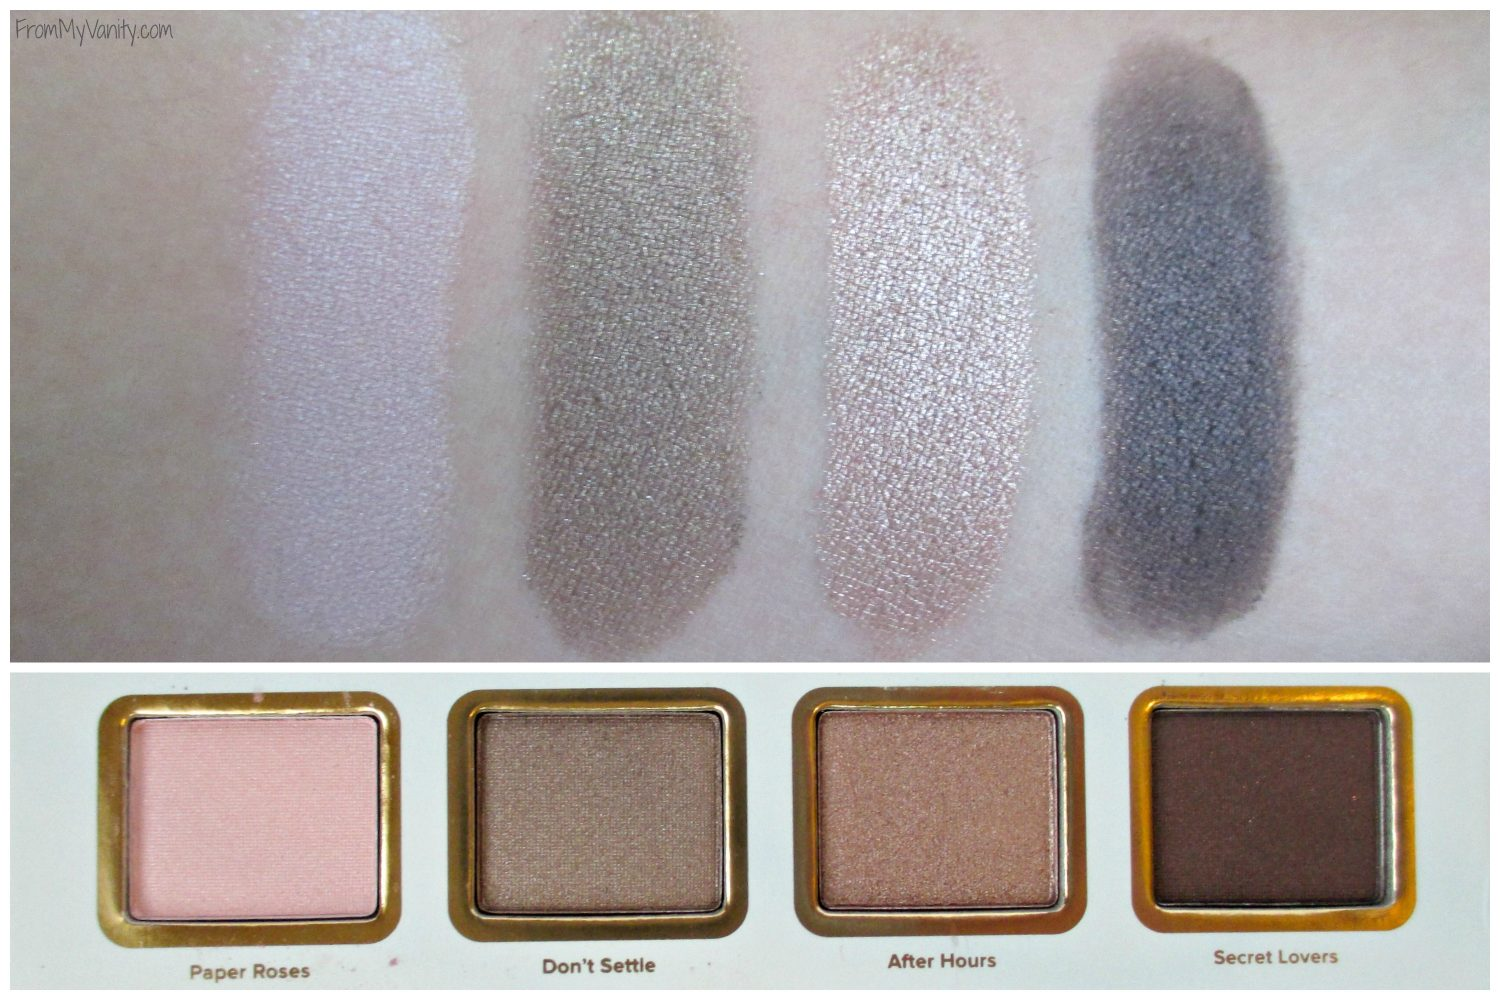 Too Faced La Petite Maison // Holiday Set // Review & Swatches // Swatches of Second Row // #UltaBeauty #TooFaced FromMyVanity.com